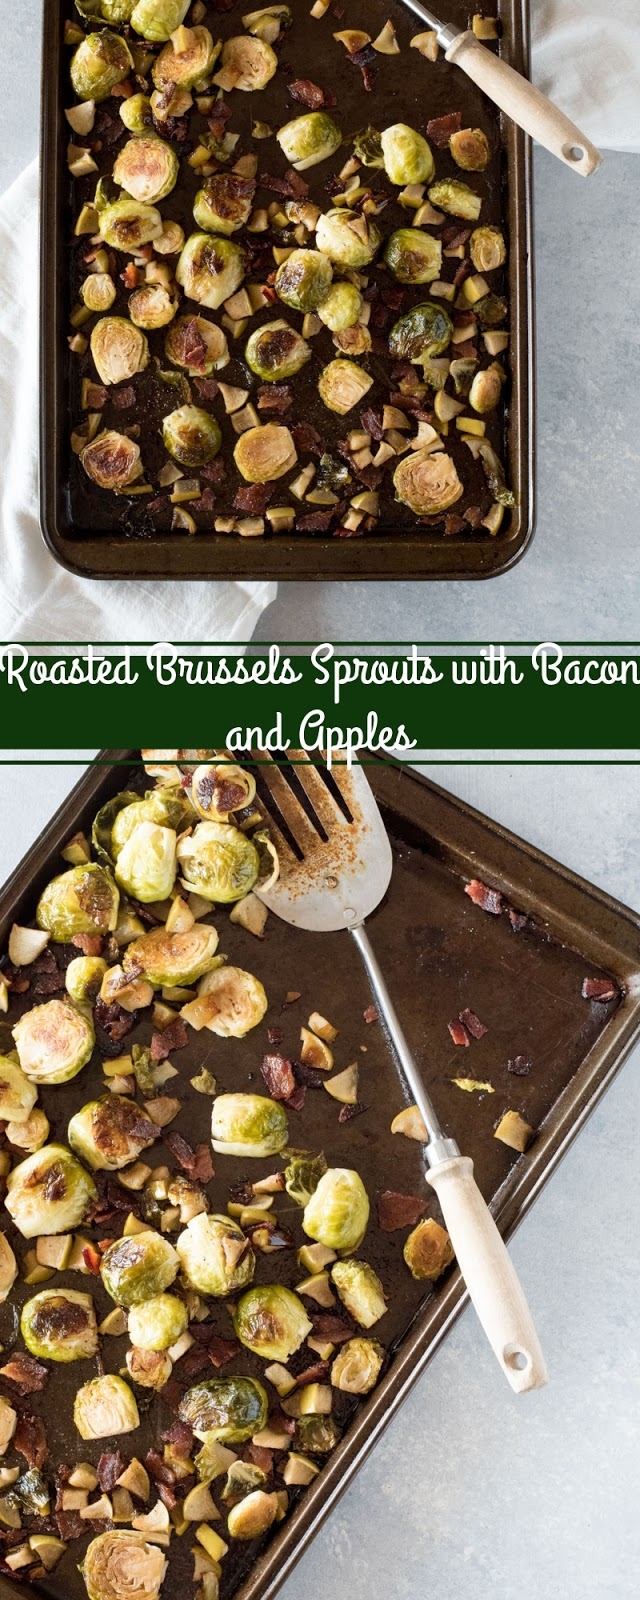 Roasted Brussels Sprouts with Bacon and Apples